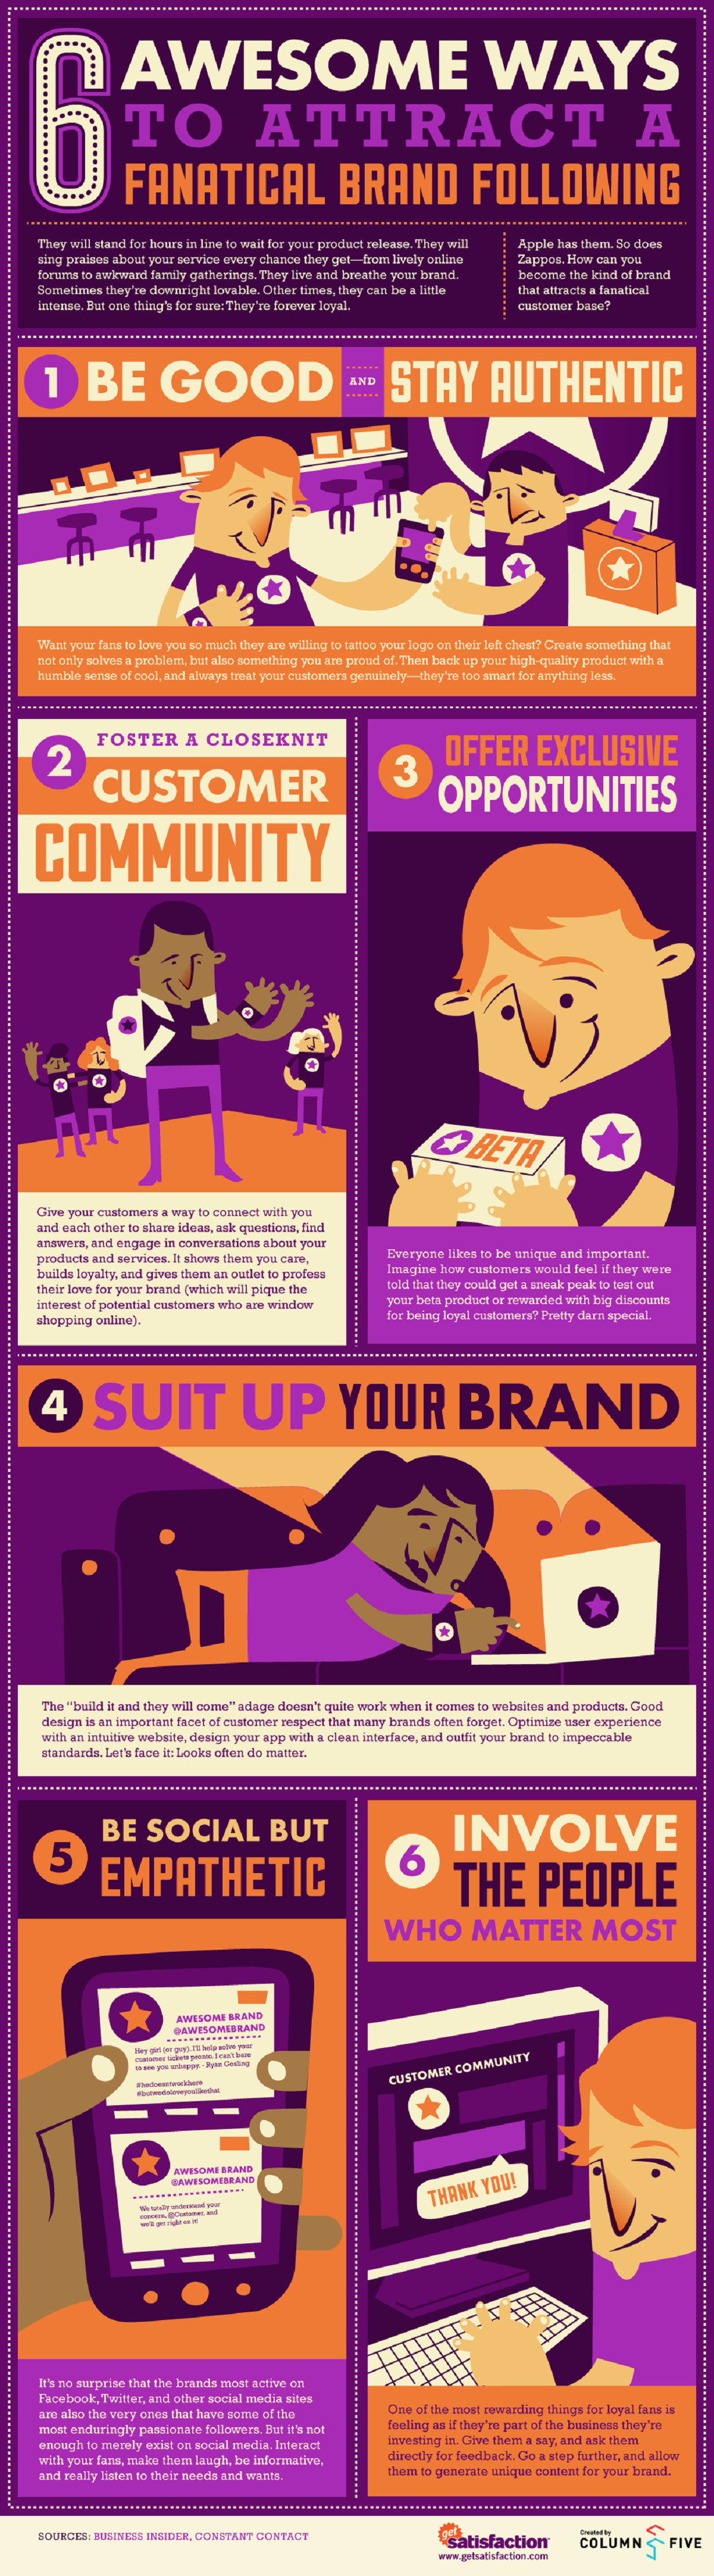 six-ways-to-attract-a-fanatical-brand-following-infographic